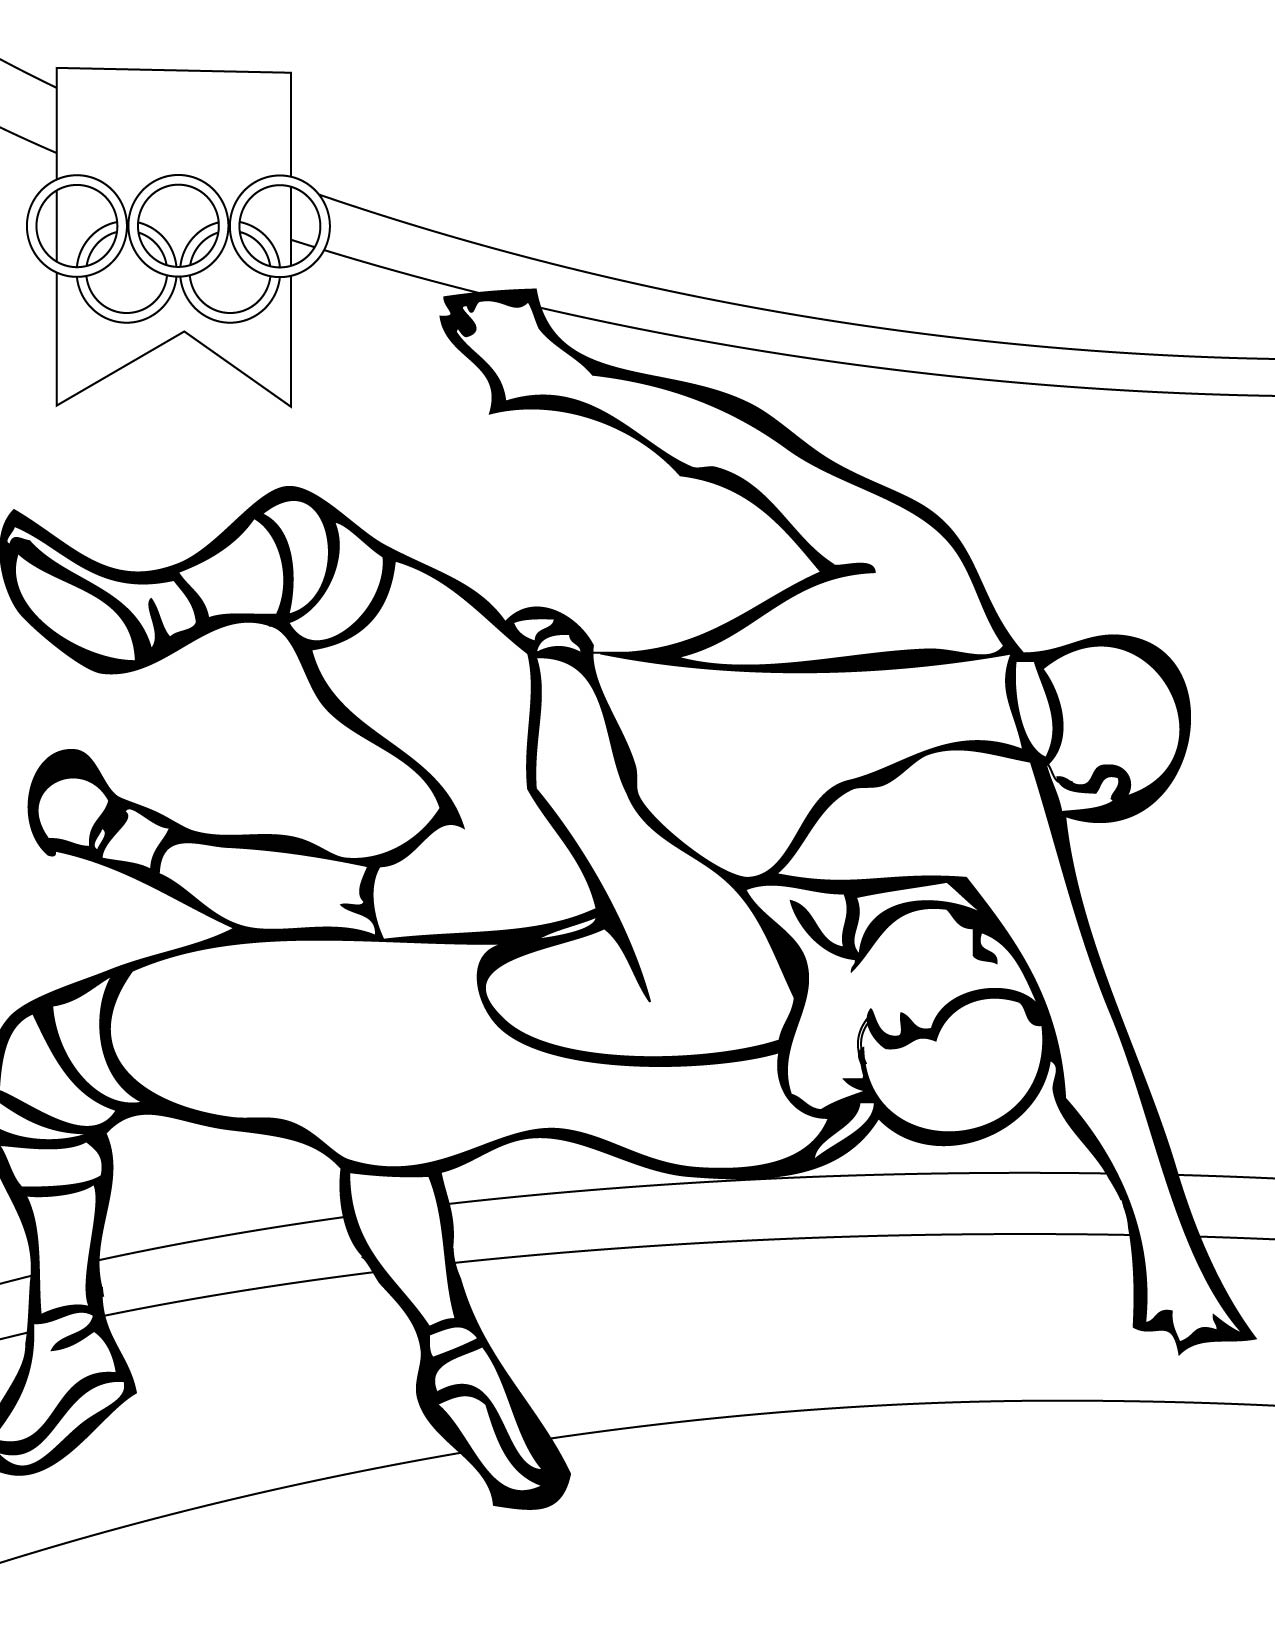 Free Wrestling Pictures